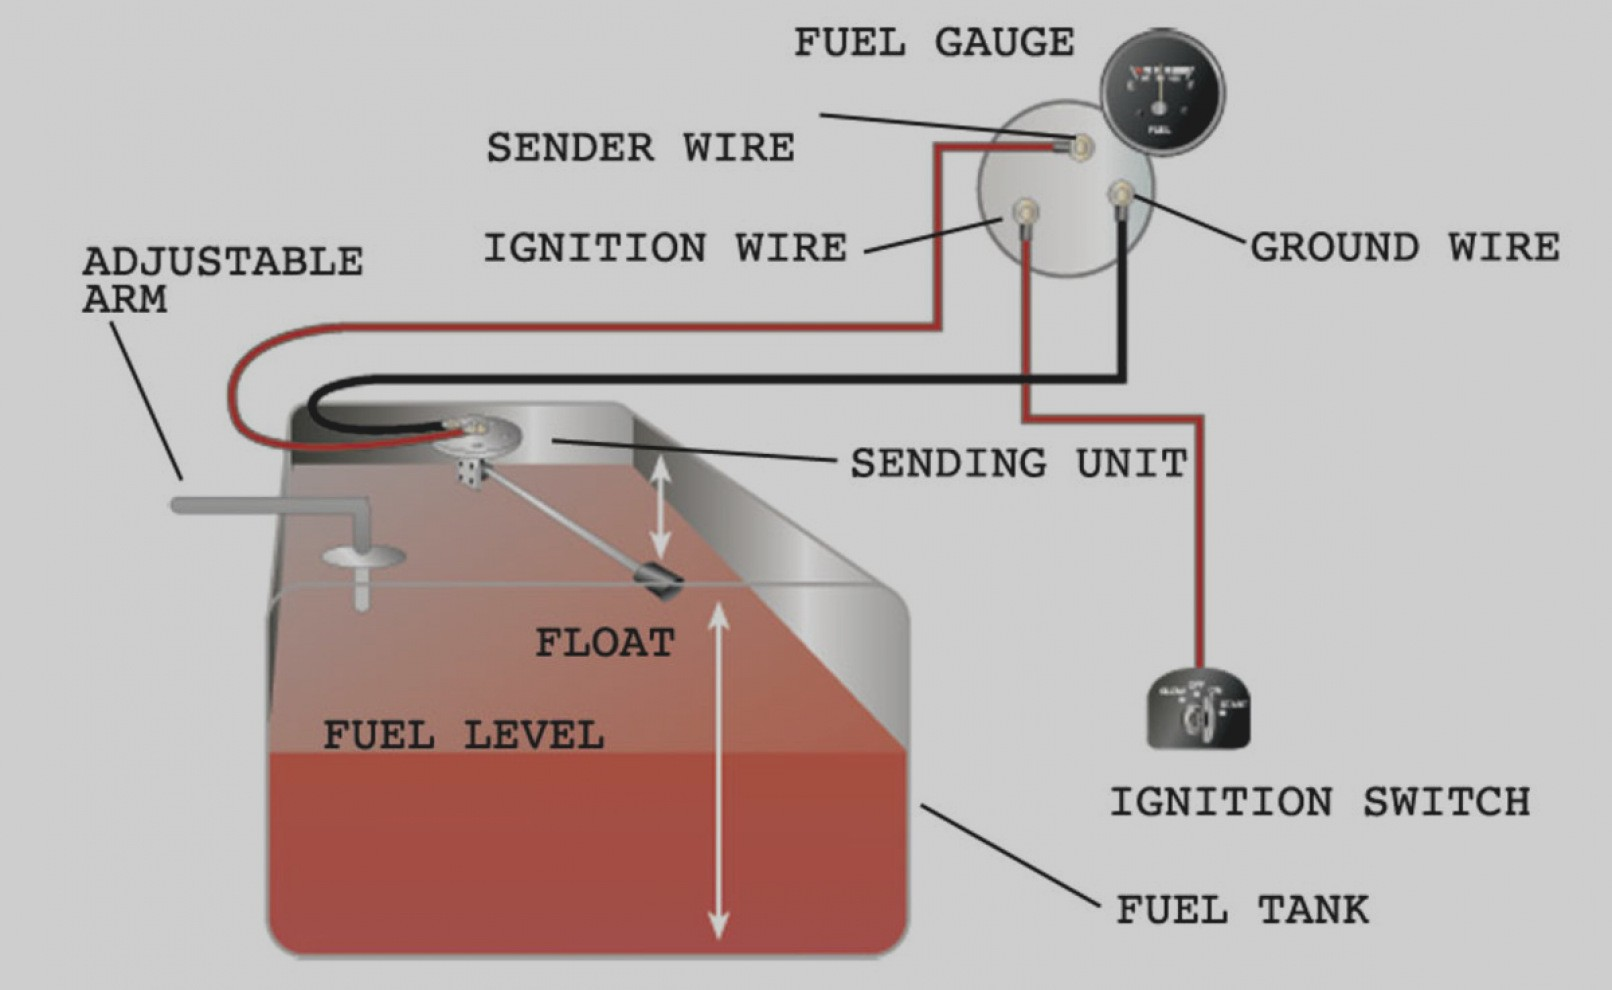 Great Fuel Gauge Marine Wire Diagram How To Test And Replace Your Fuel Gauge And